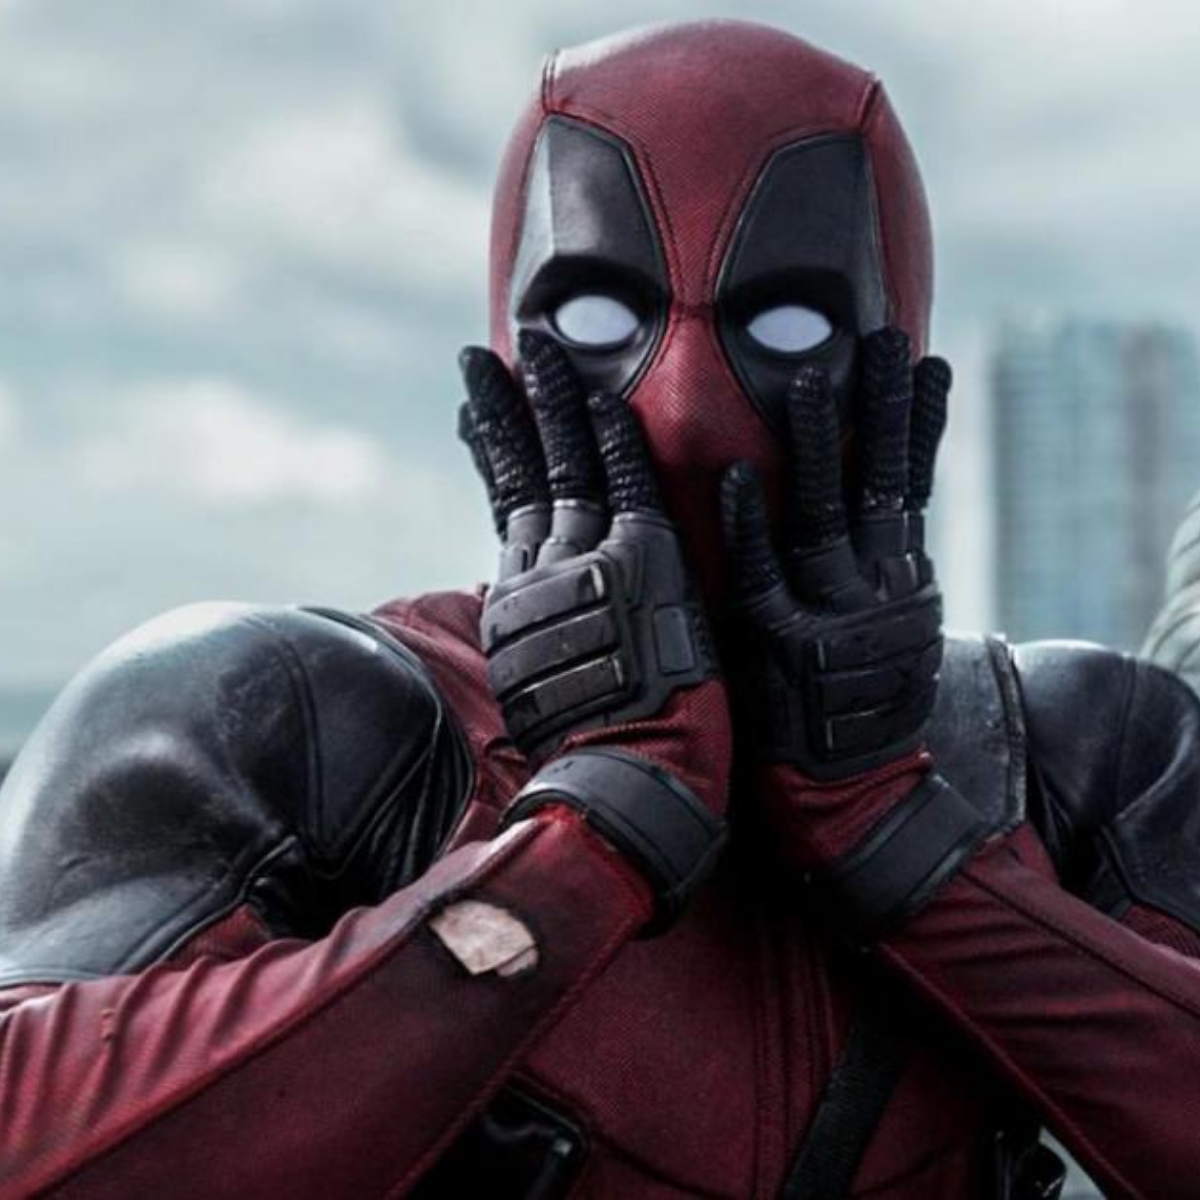 Marvel Studios to introduce Deadpool in THIS Avengers: Endgame character's solo movie? Read Details